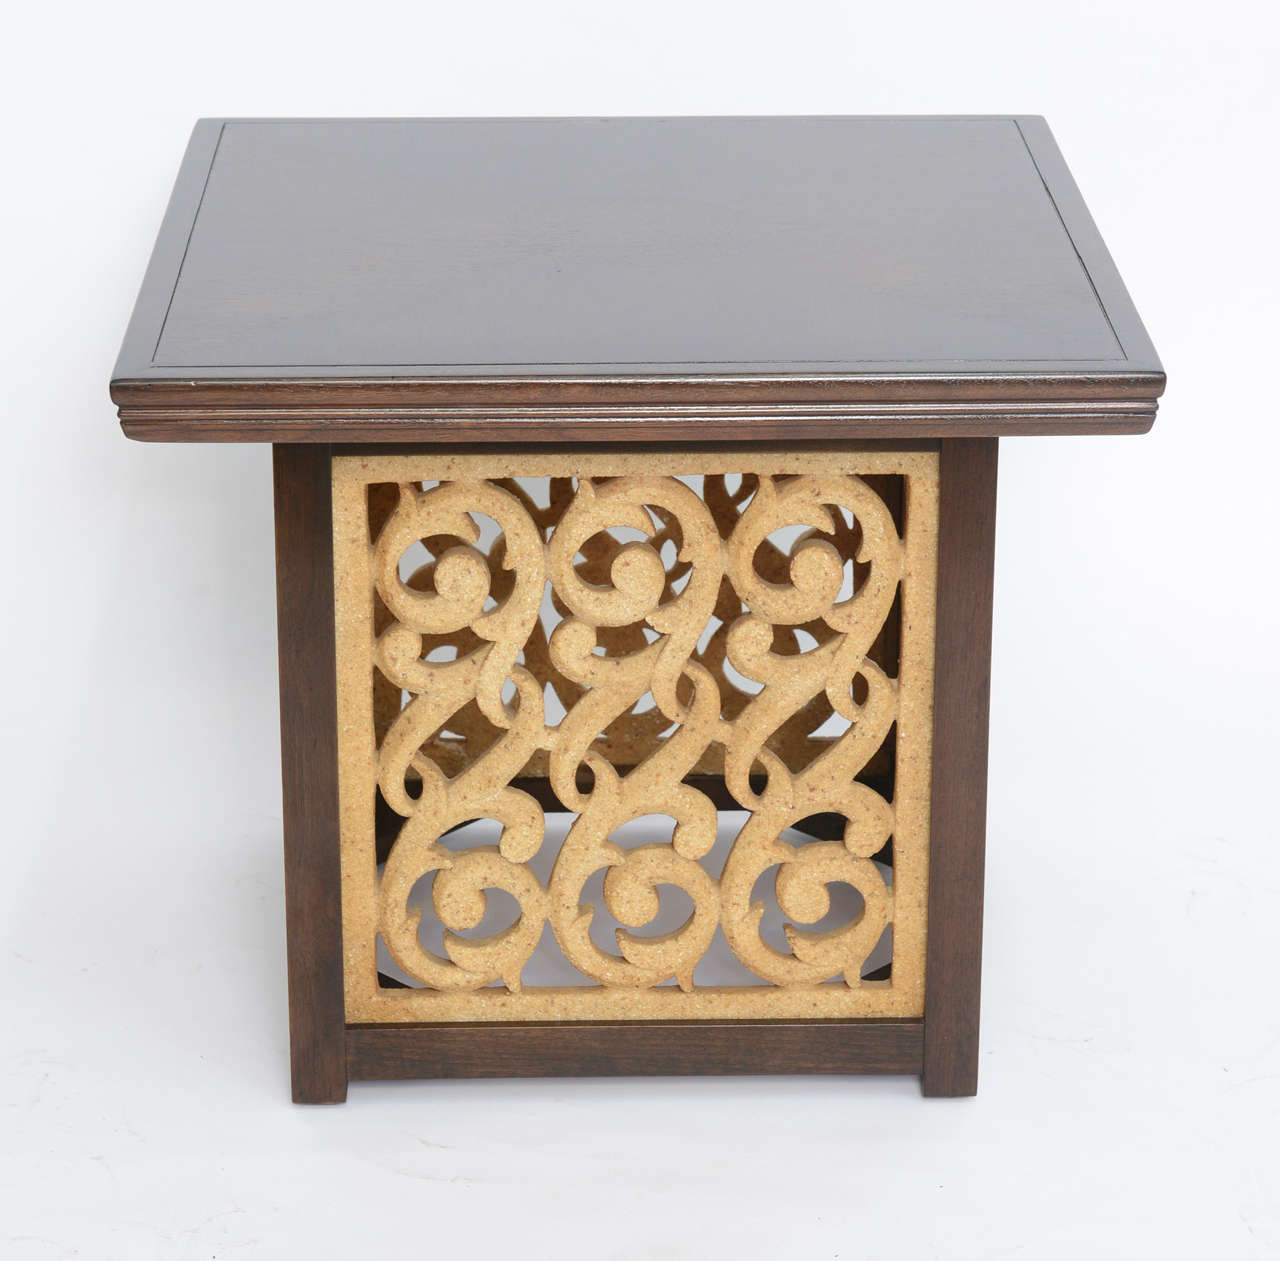 REDUCED FROM $2,250. Rarely seen, this Widdicomb table features an elegant square molded and inlaid walnut top and legs in Sable color with cast sculptural resin panels in a repeating C-scroll design. inlay design is quartered with a circular